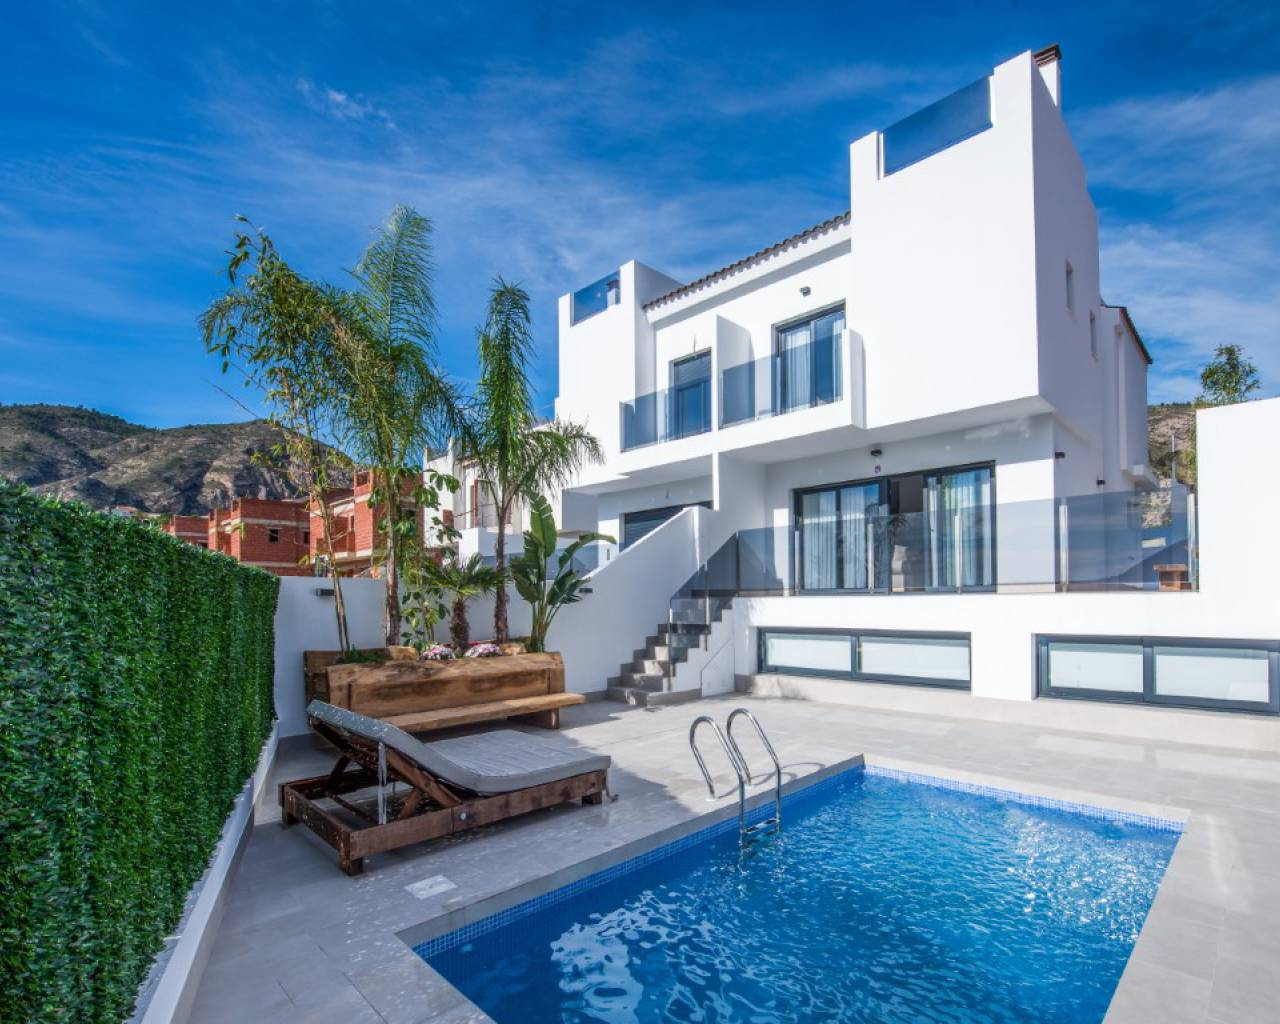 Villa - New Build - Alicante - Orxeta